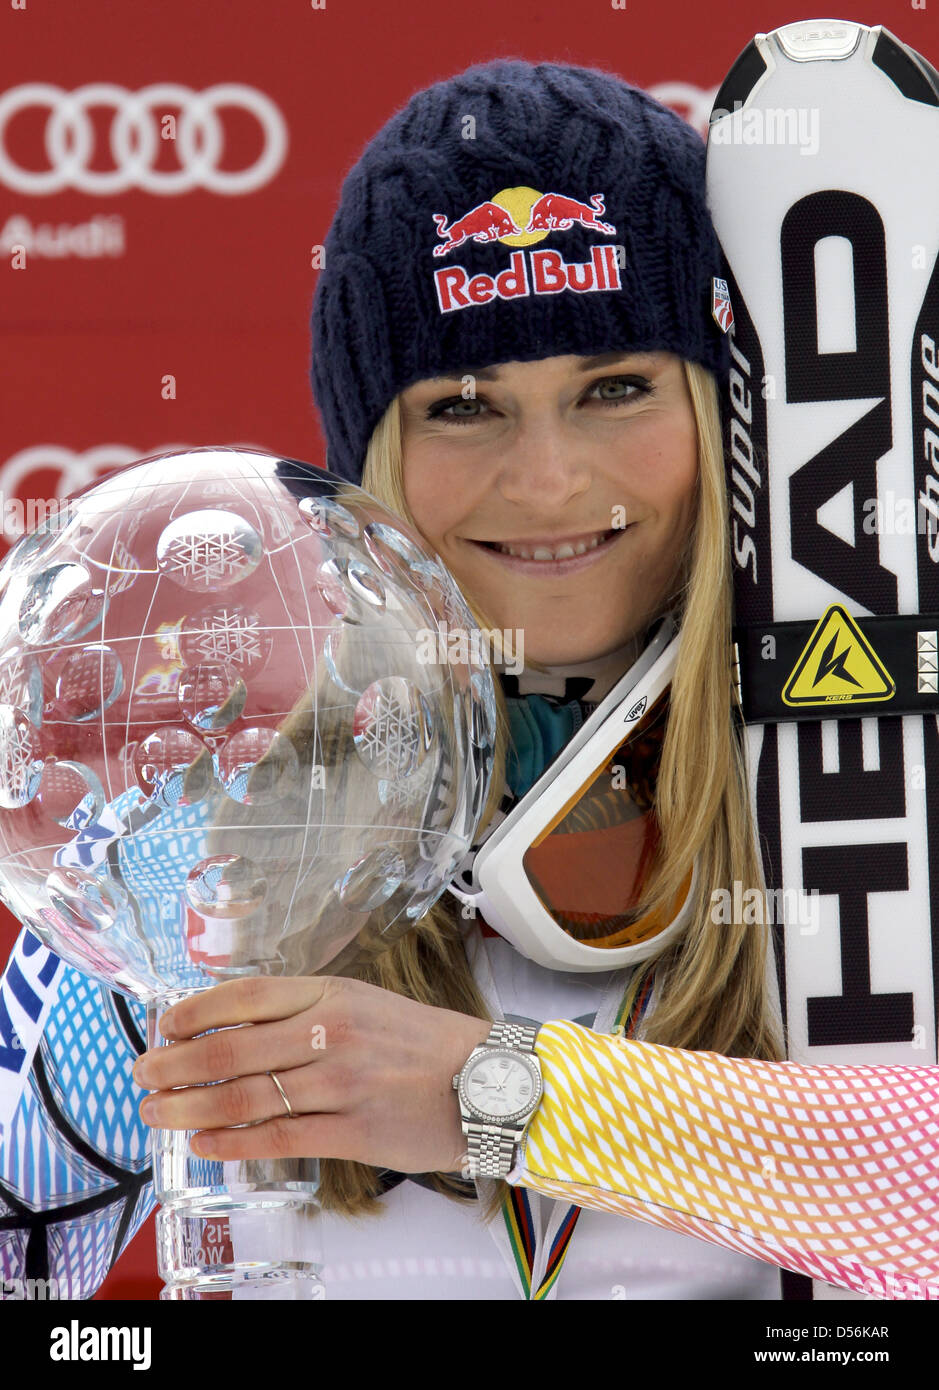 the-winner-of-the-overall-world-cup-us-lindsey-vonn-poses-on-the-podium-with-her-world-cup-trophy-during-the-world-cup-final-in-garmisch-partenkirchen